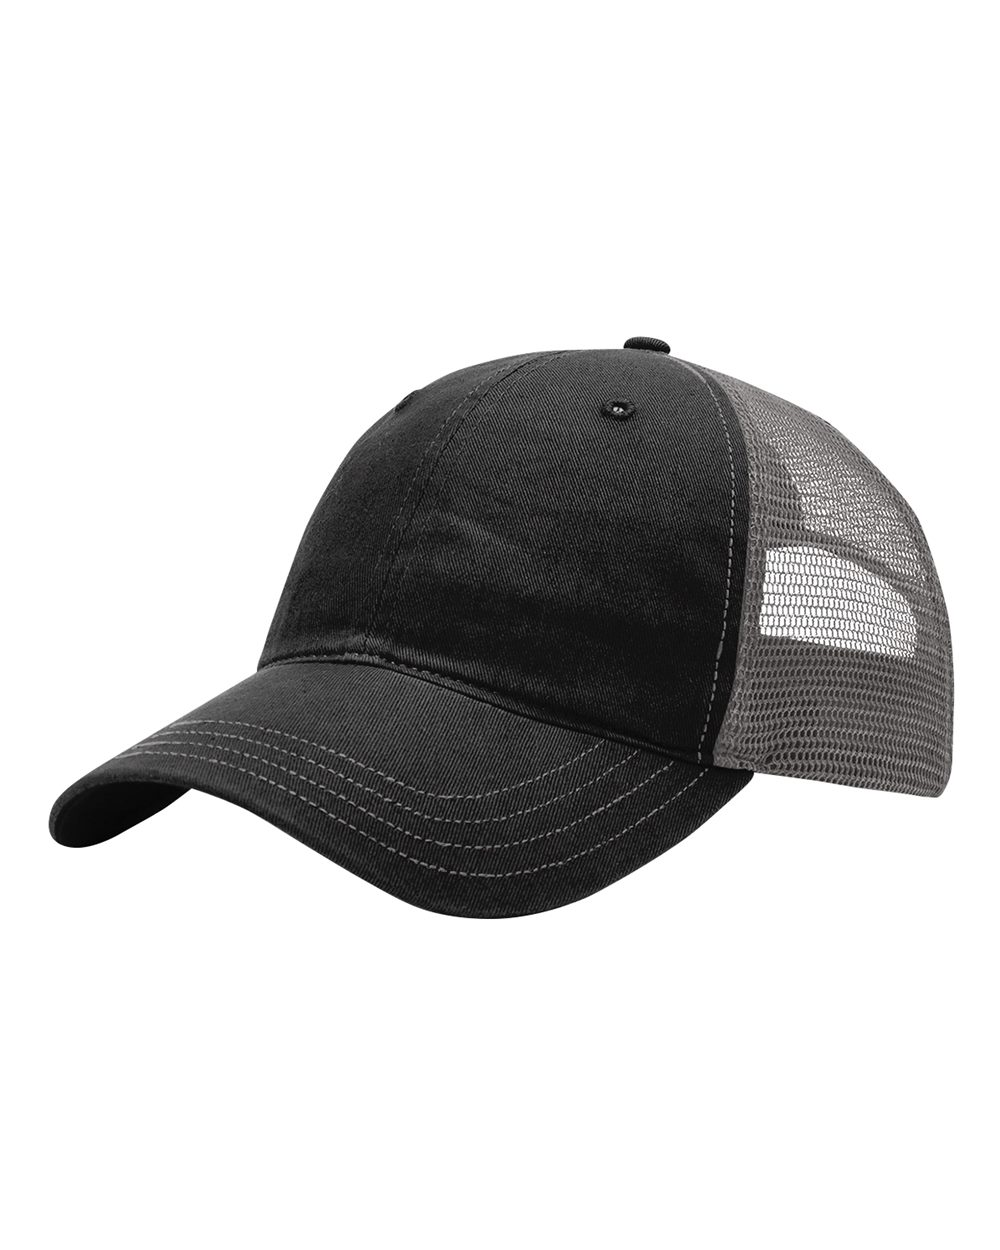 Richardson 111 - Garment Washed Trucker Cap  5.75 - Headwear 5d16e04542fd